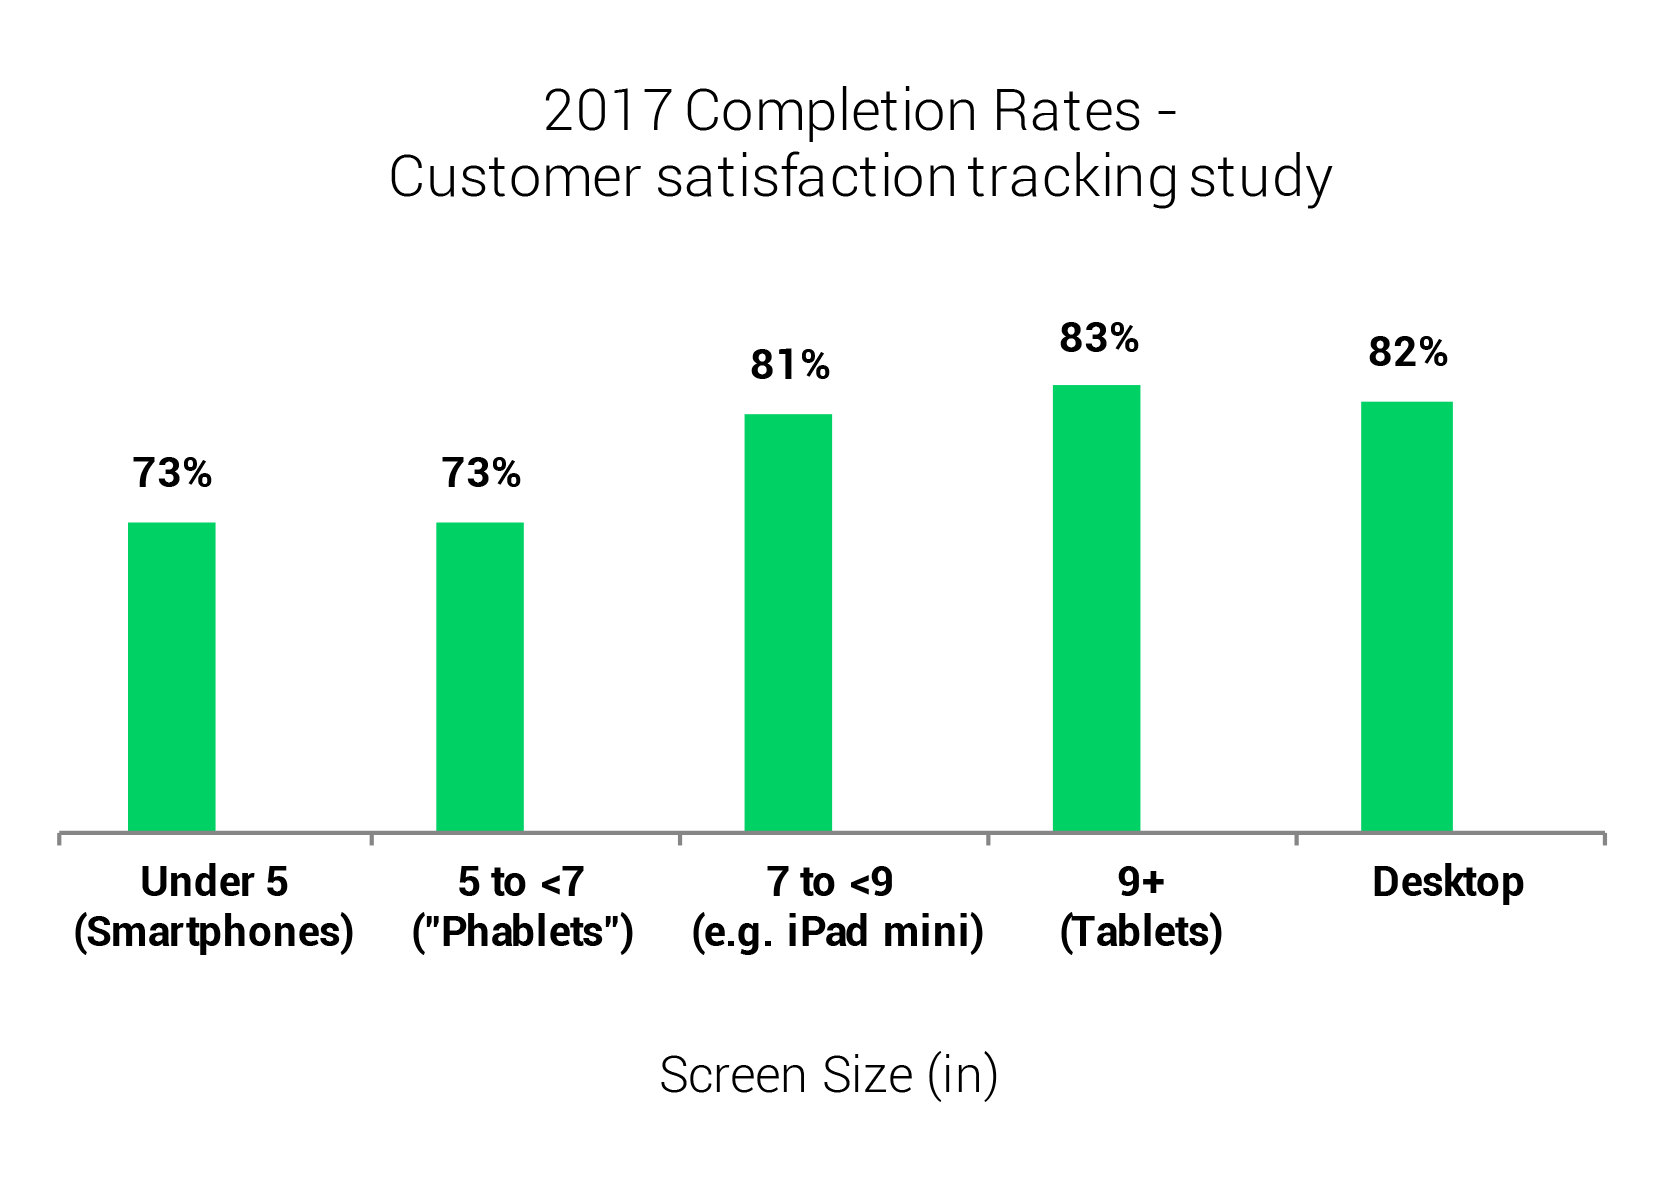 Mobile Trends: Completion rates by screen size.